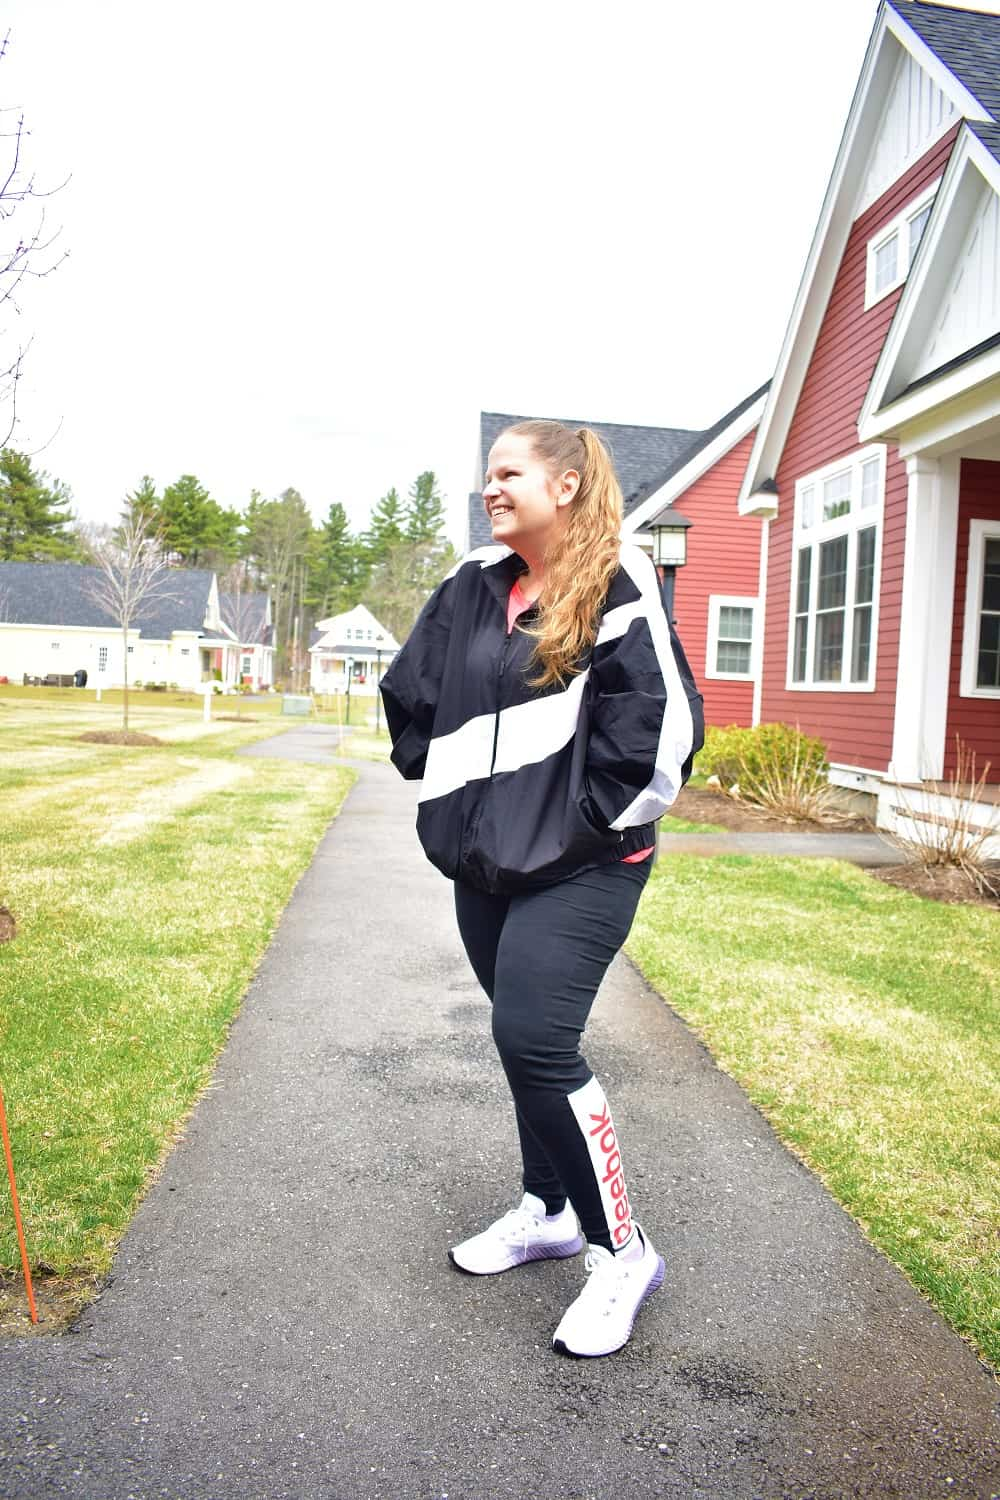 a woman getting ready to start a 30 day walking challenge outside in workout gear